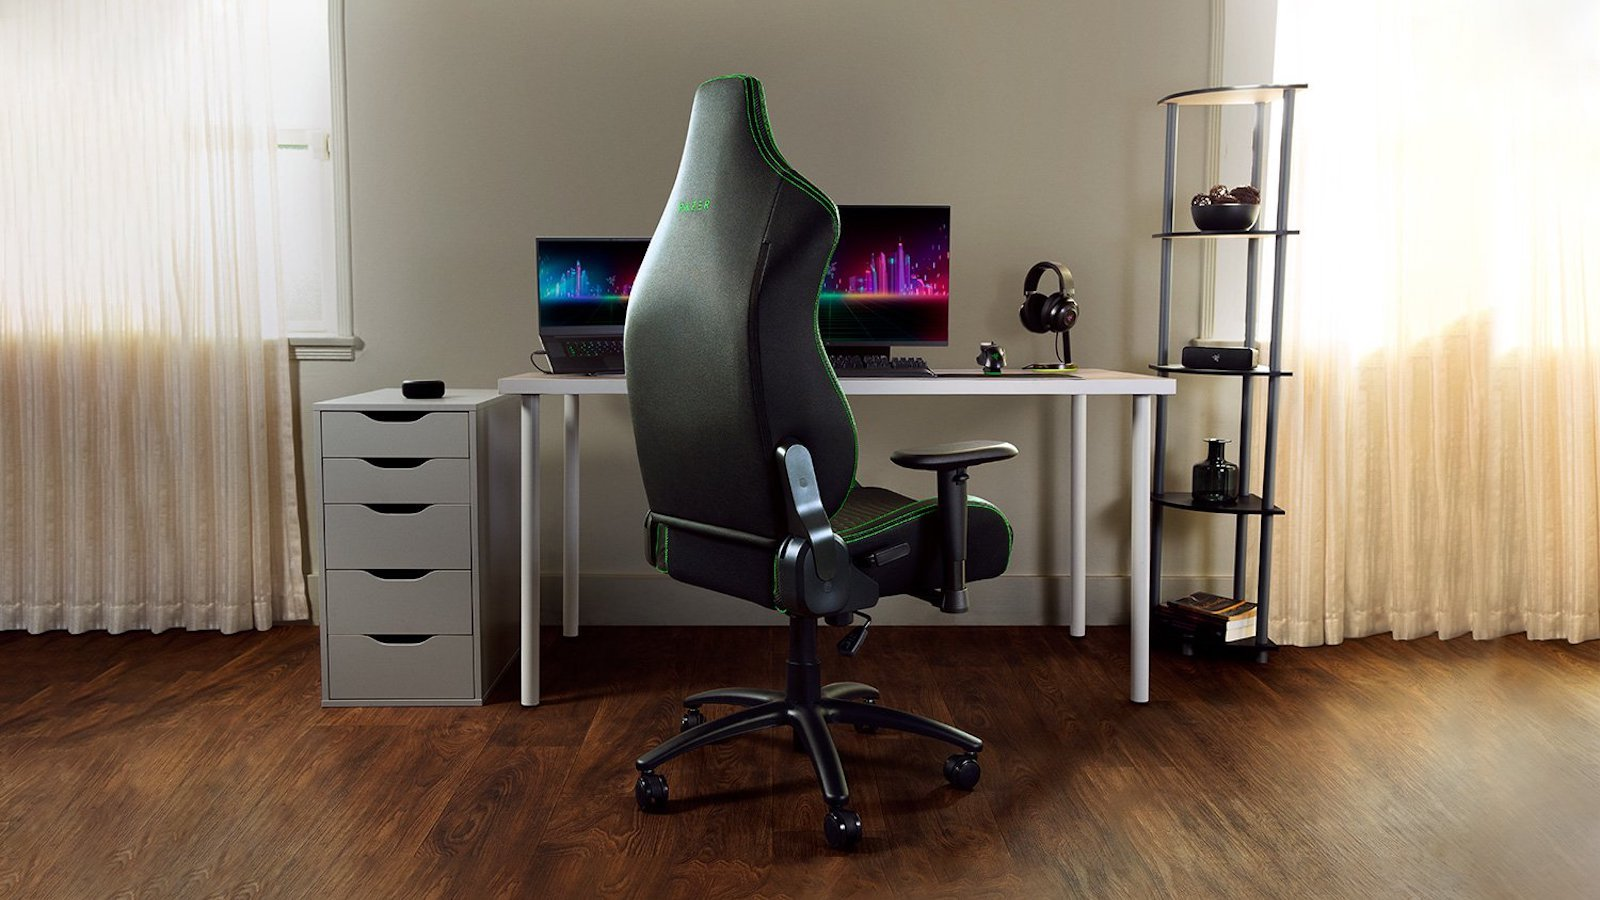 Razer Iskur X ergonomic gaming chair has a fully adjustable recline, tilt, and height